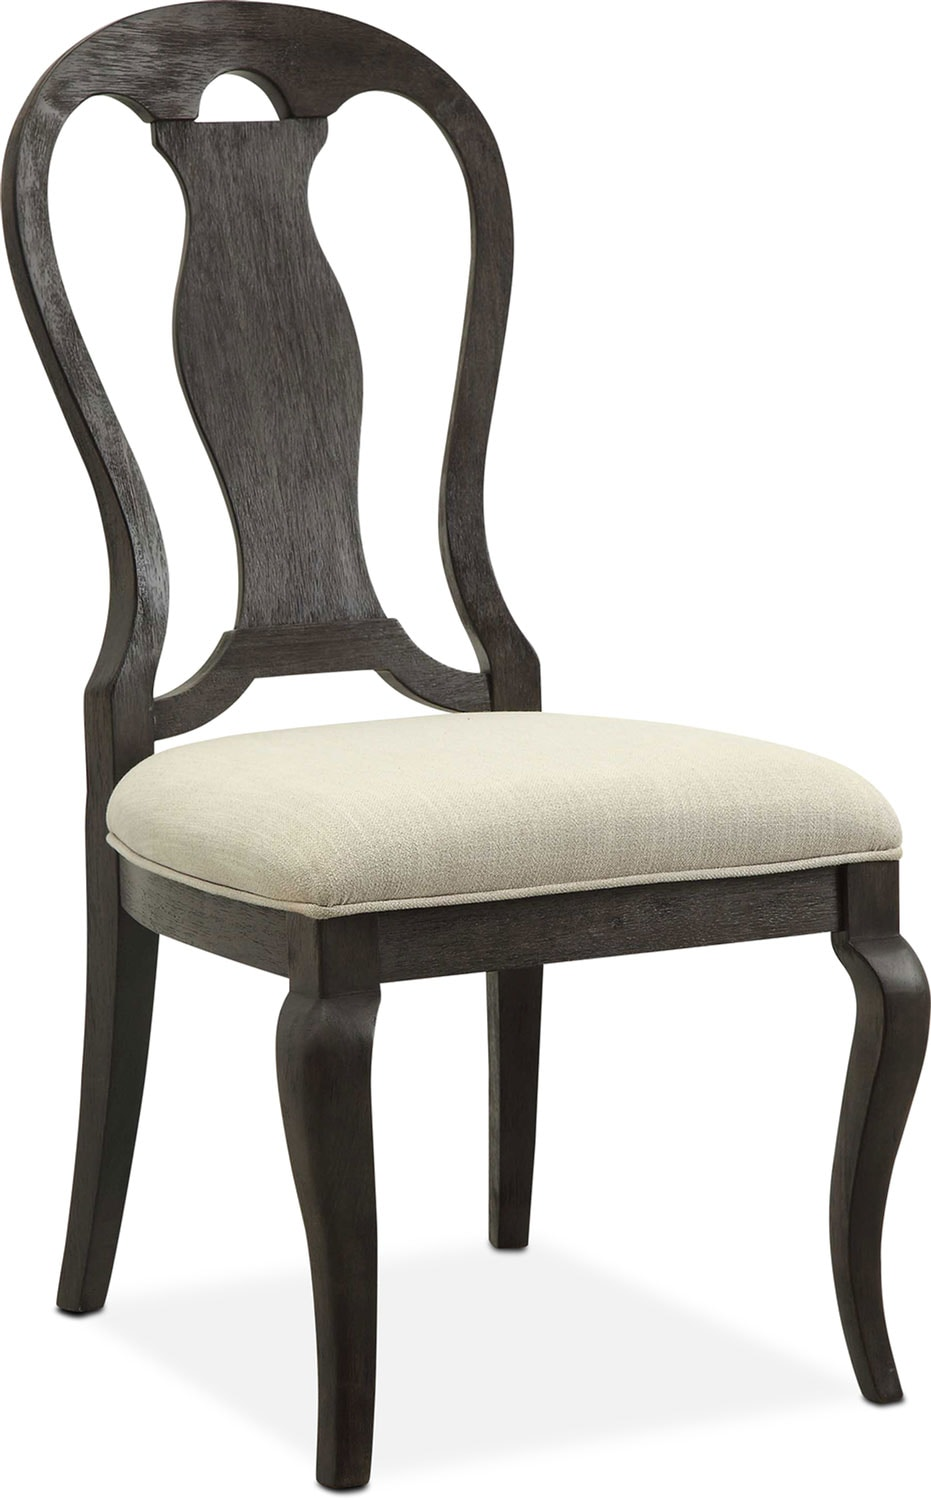 Dining Room Furniture   Lancaster Queen Anne Chair   Truffle